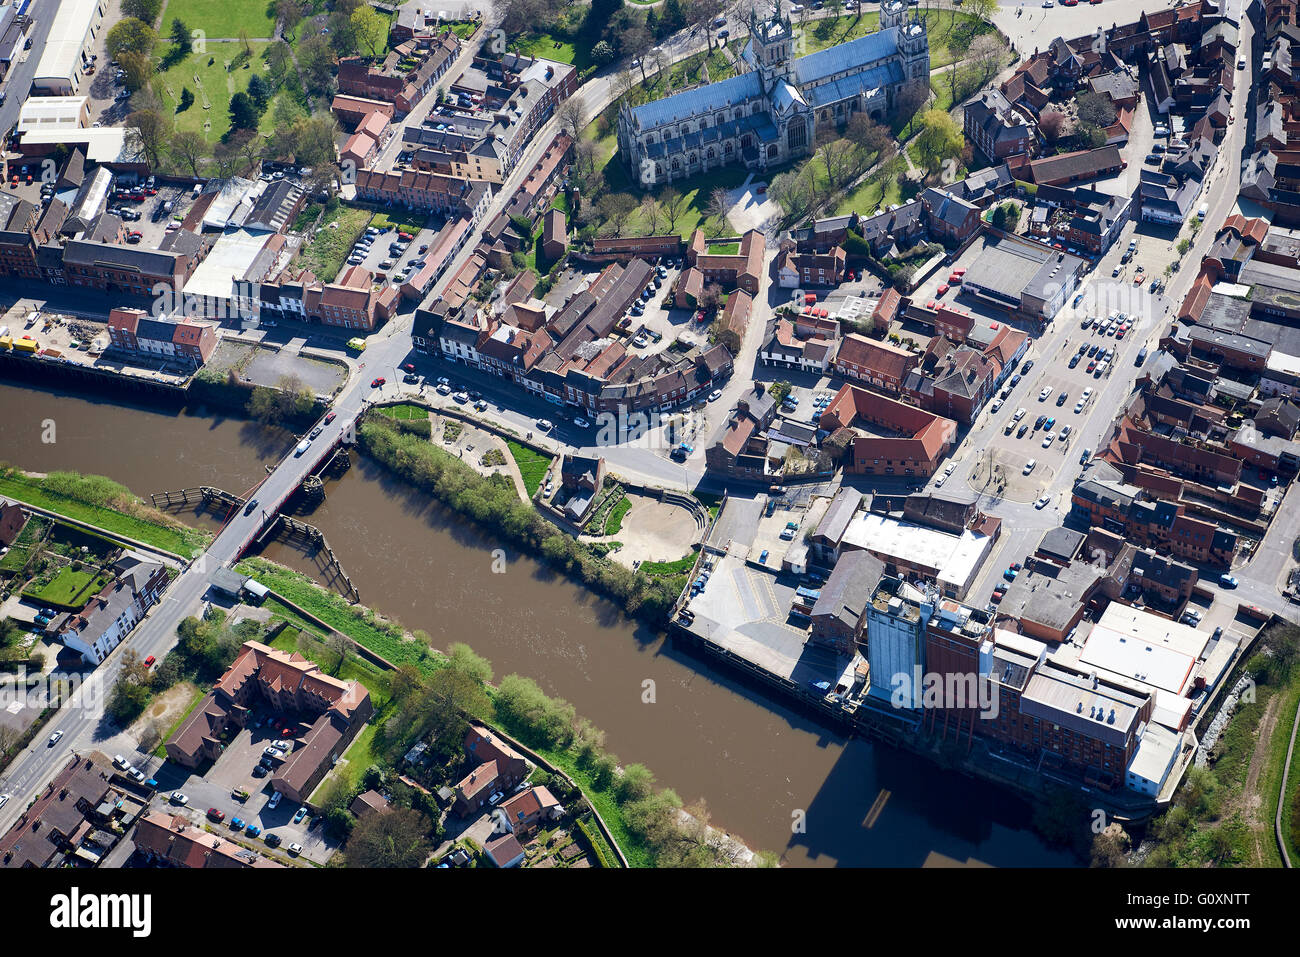 Riverside - Market town of Selby, North Yorkshire, Northern England, UK - Stock Image